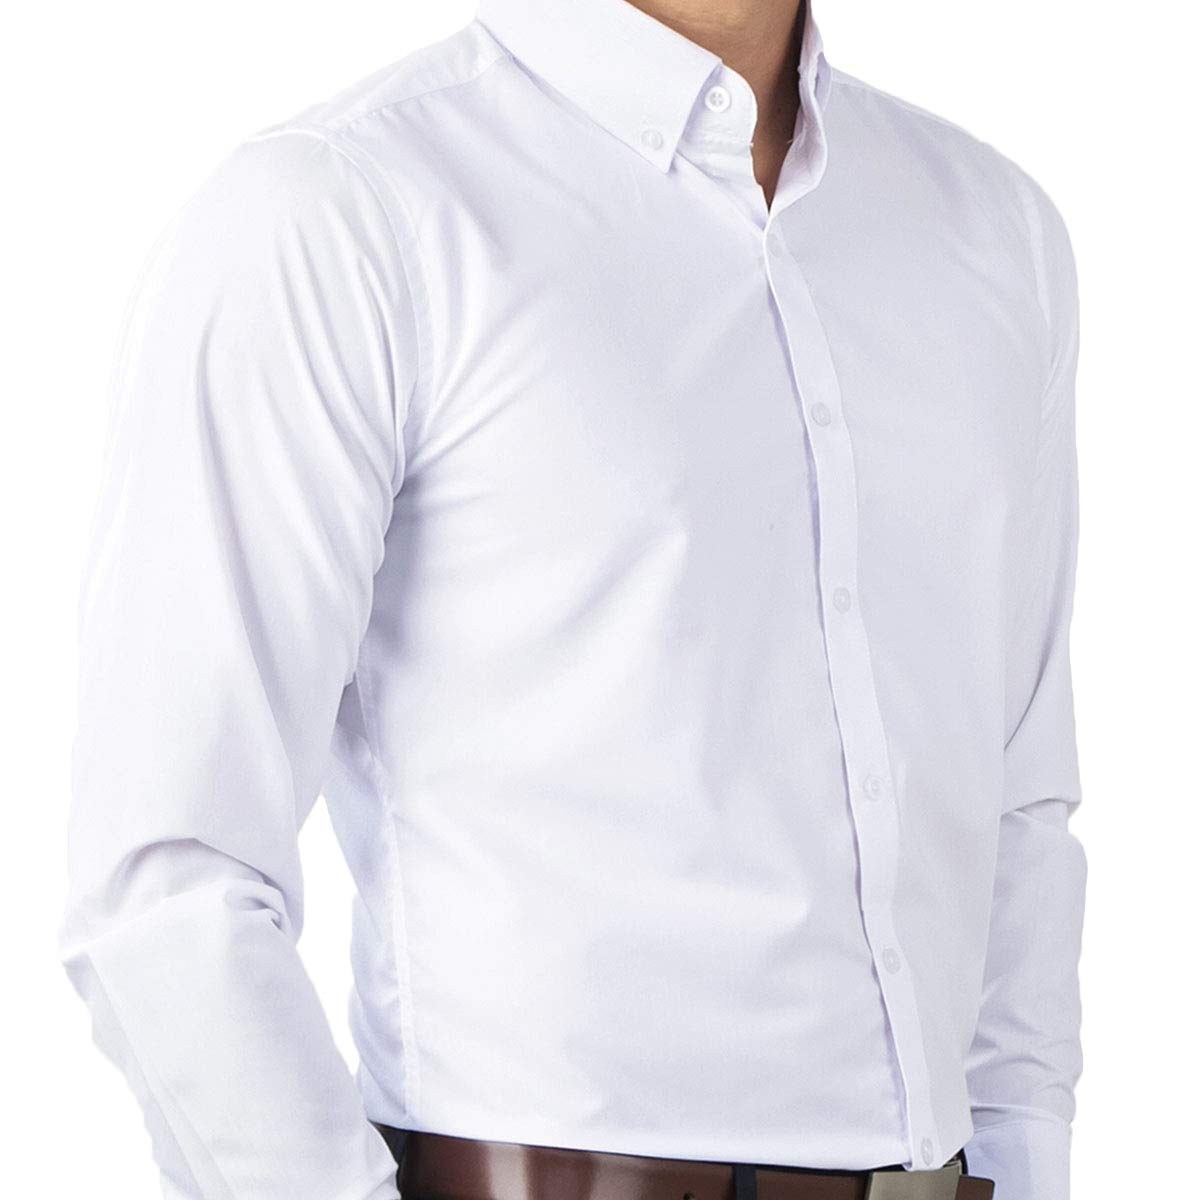 1b7867f6243 IDENTITY Mens Plain White Button Down Woven Smart Casual Formal Corporate  Wear Long Sleeve Shirt at Amazon Men s Clothing store